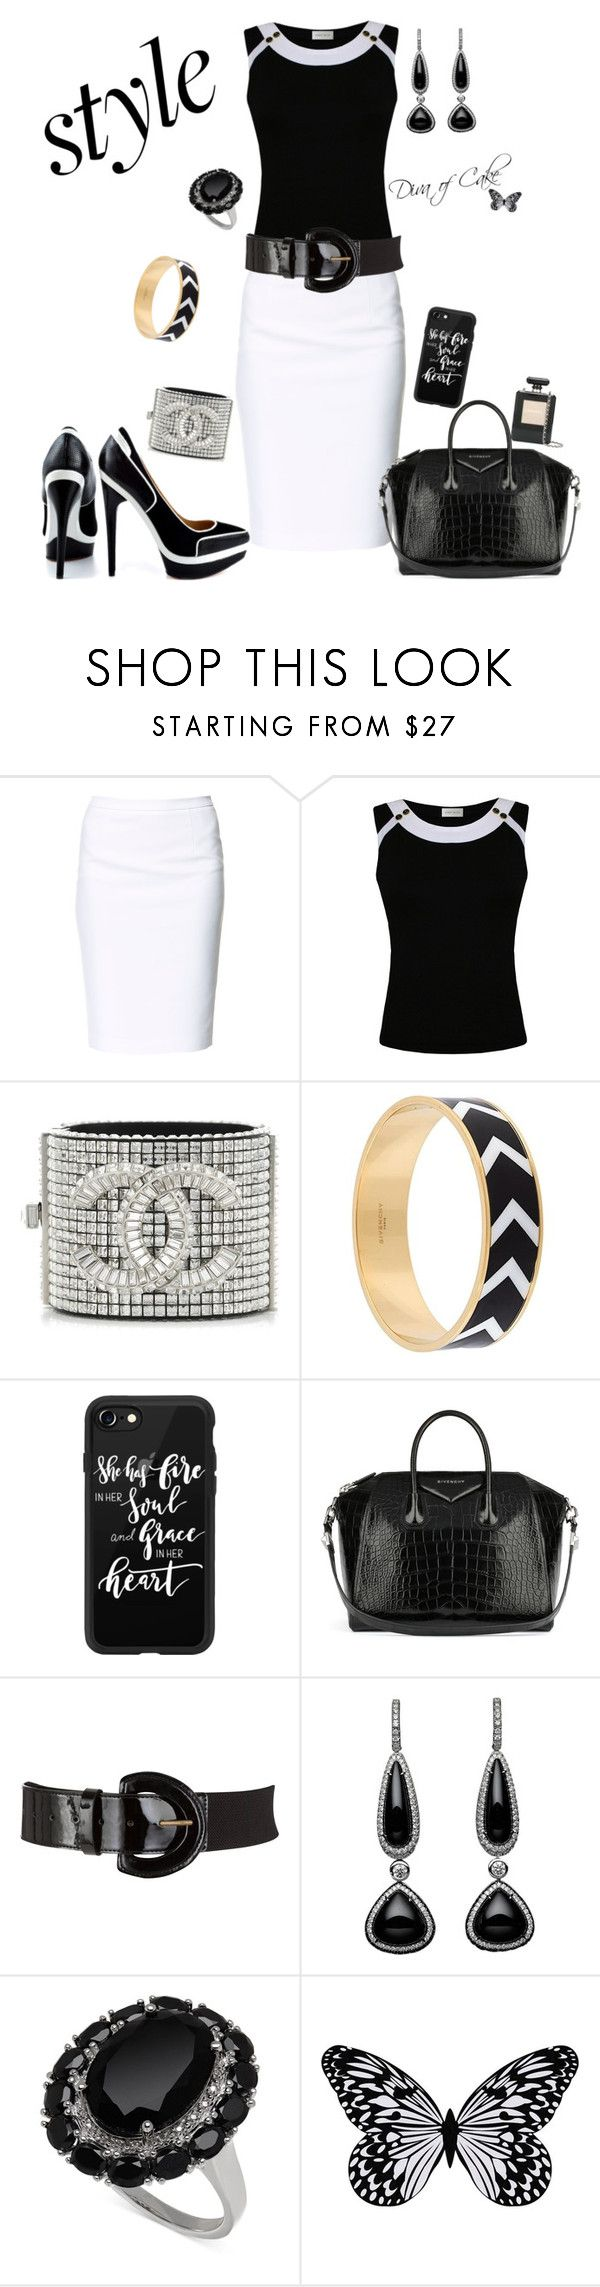 """black & White outfit"" by Diva of Cake on Polyvore featuring Zara, Minuet Petite, Fendi, Givenchy, Casetify, John Lewis, Visionnaire and Chanel"